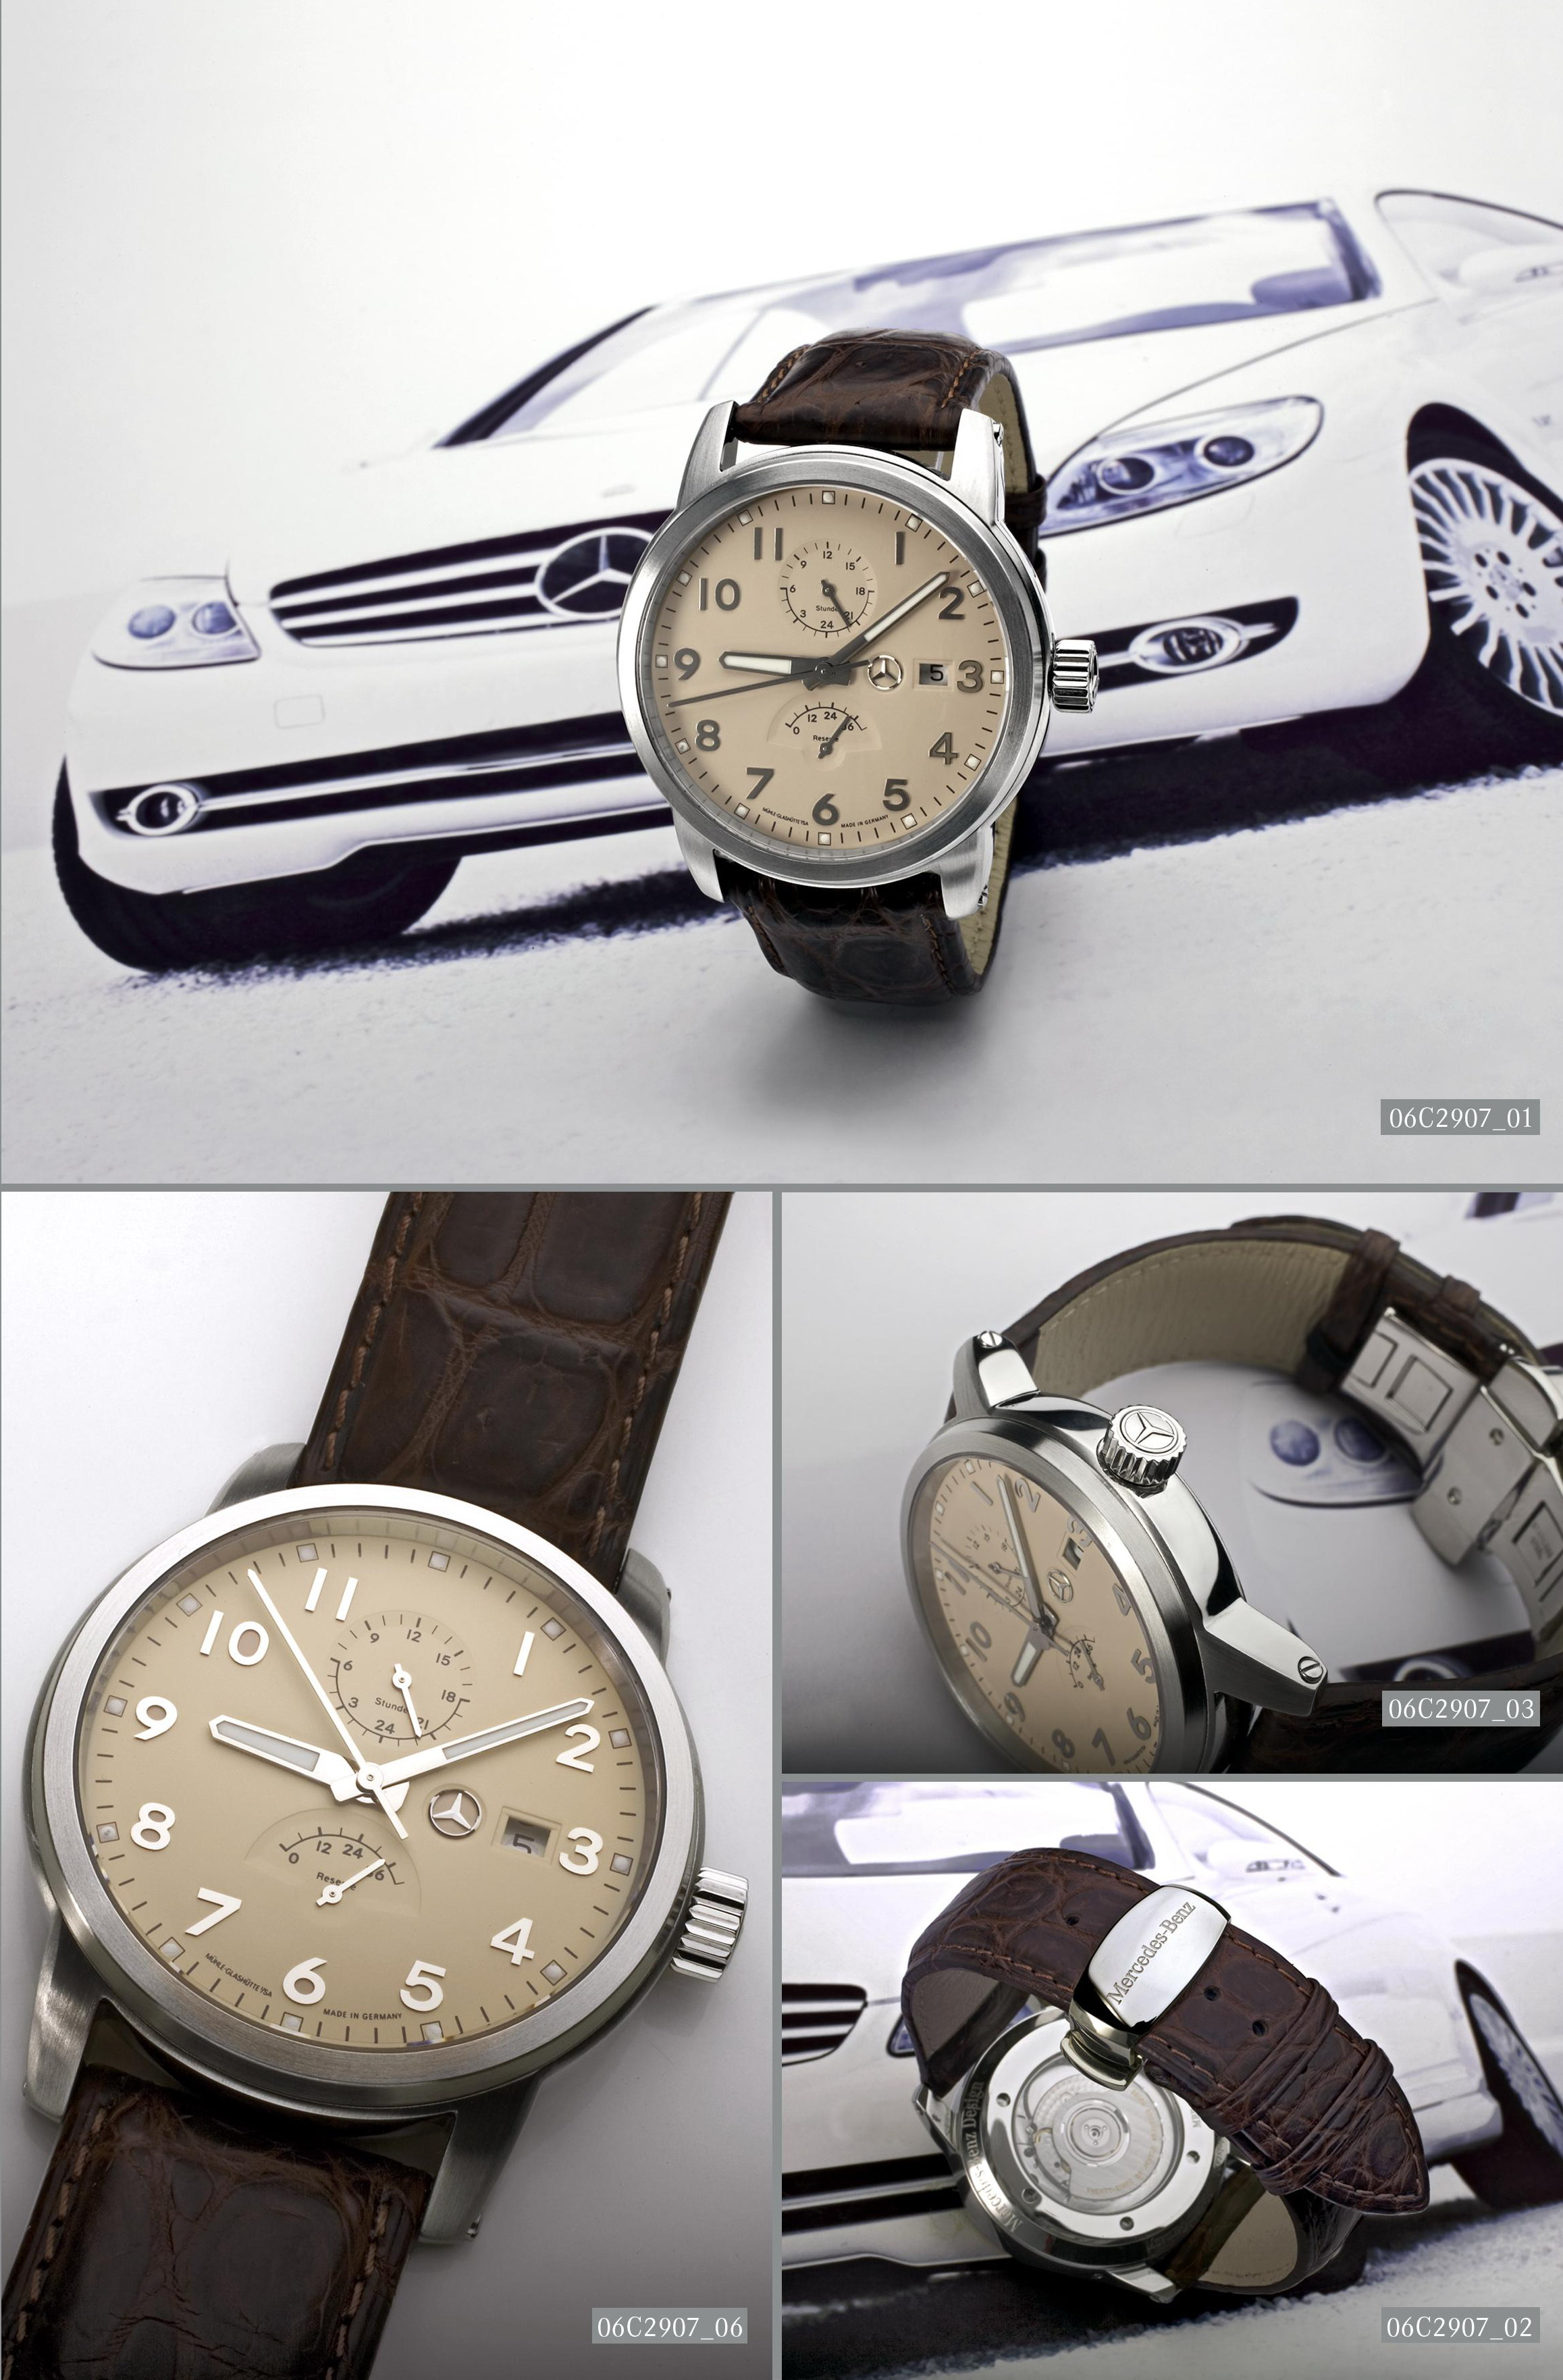 Mercedes benz launch limited edition watches news top speed for Mercedes benz limited edition